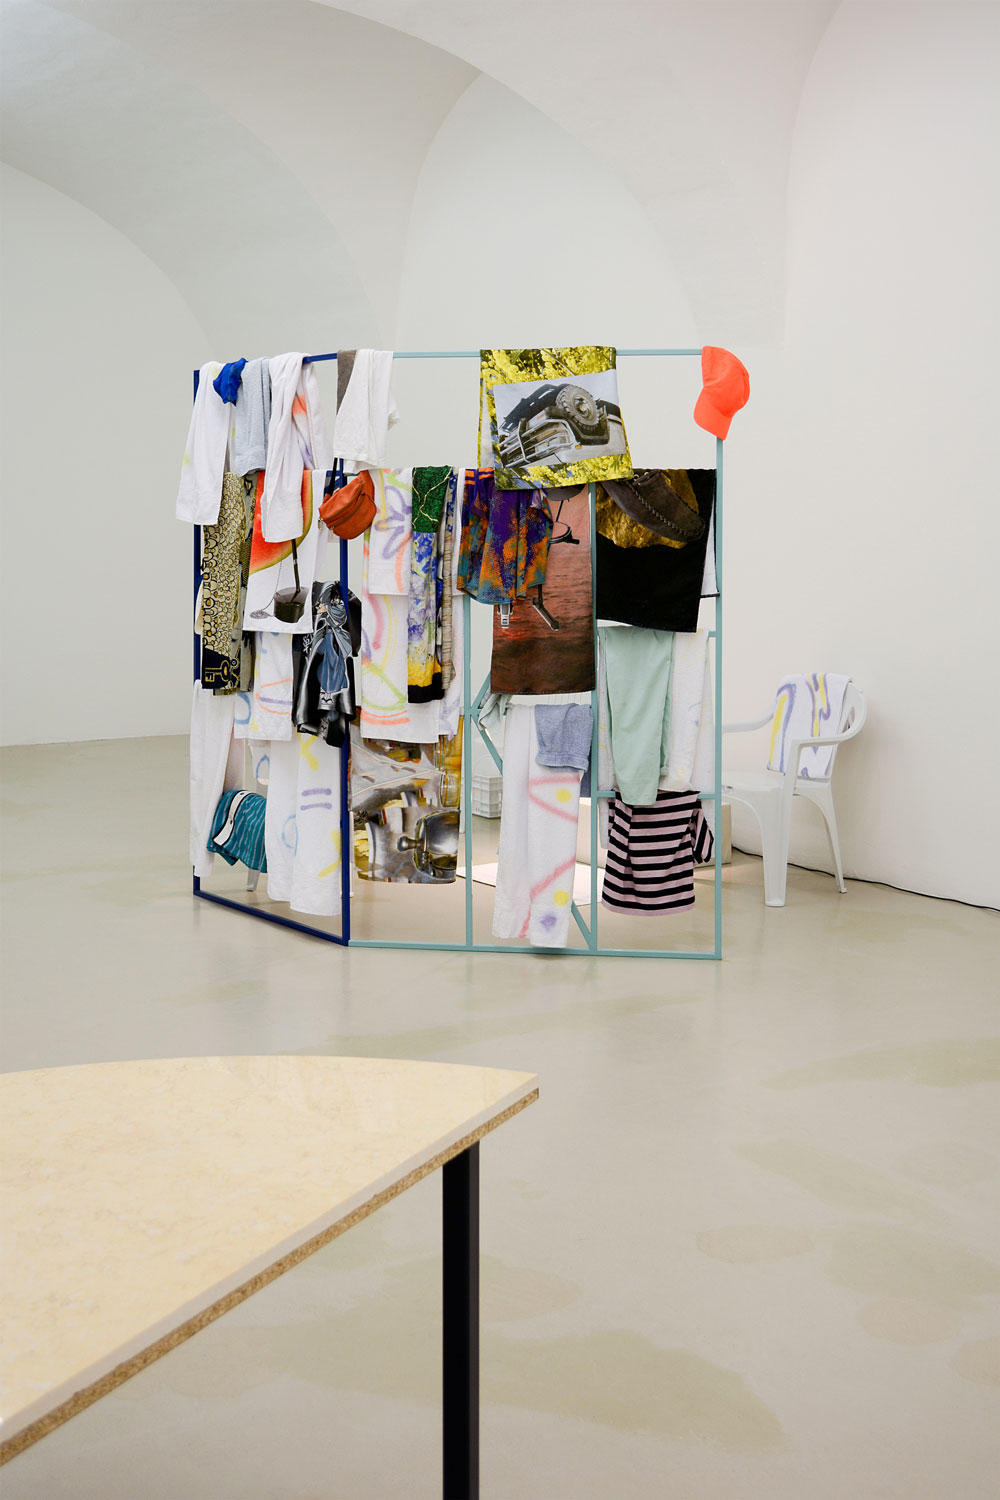 Bassin ouvert, Clémence Seilles, Installation view, photo by aneres